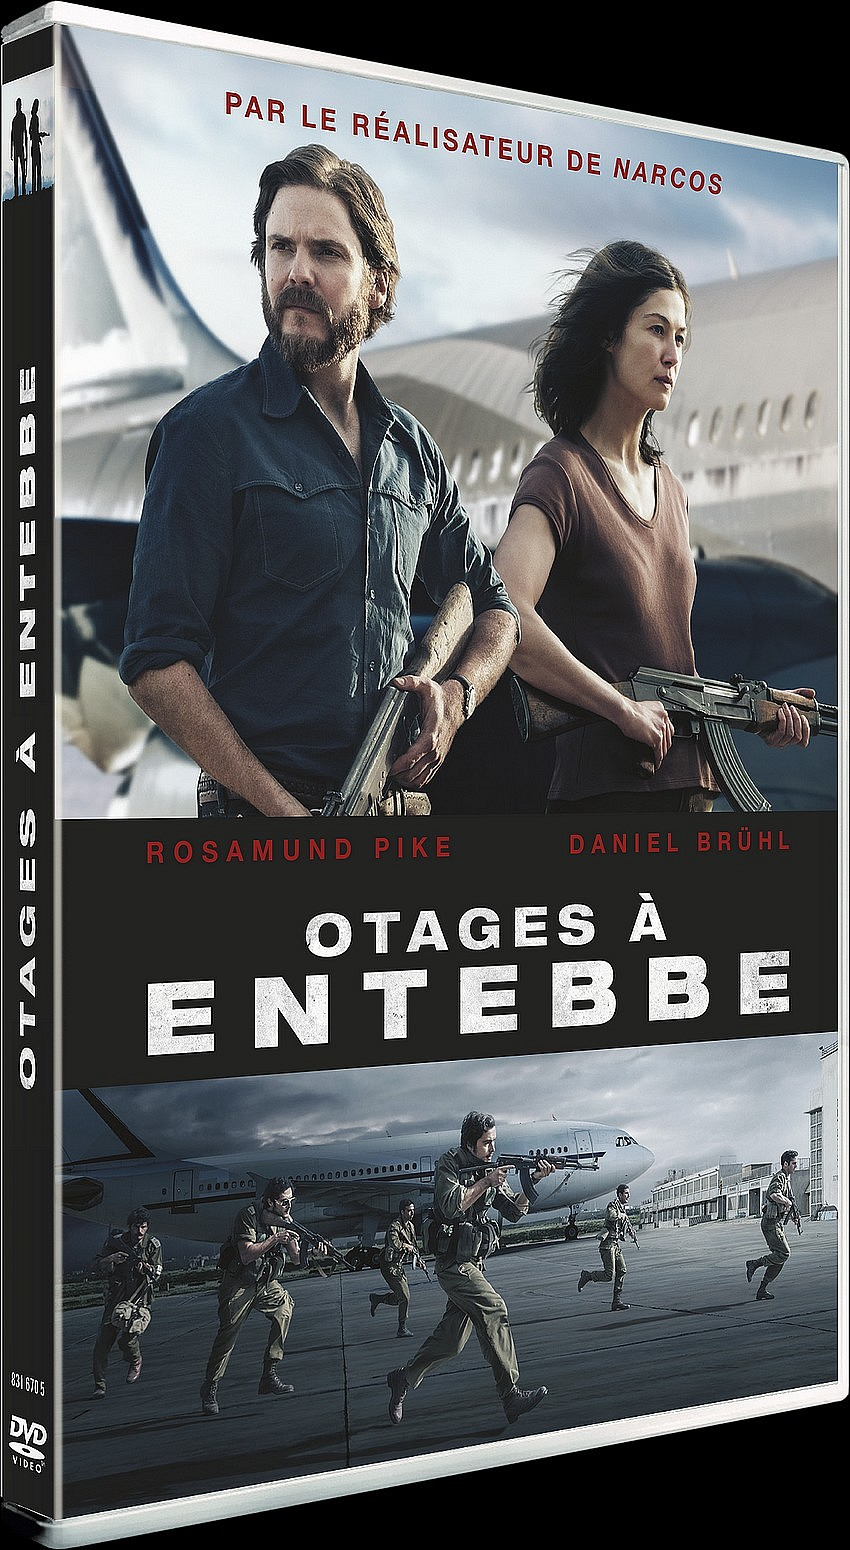 dvd-otages-e-entebbe